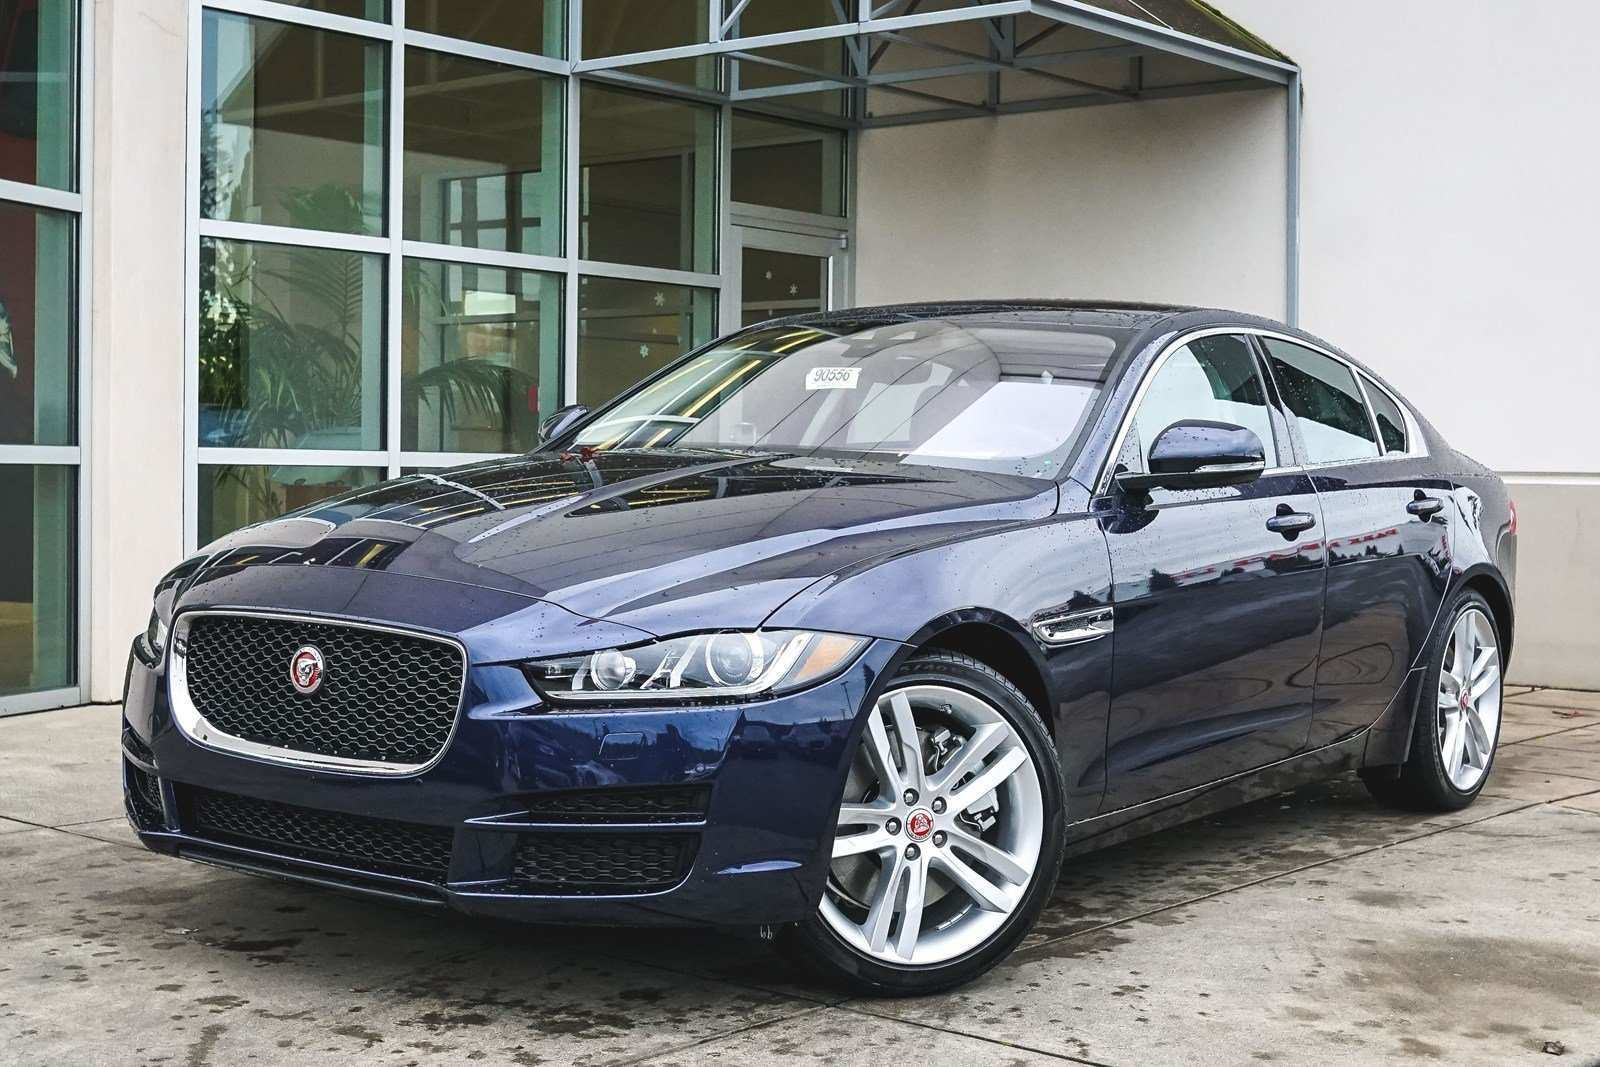 21 Gallery of Jaguar Xe 2019 Performance and New Engine with Jaguar Xe 2019